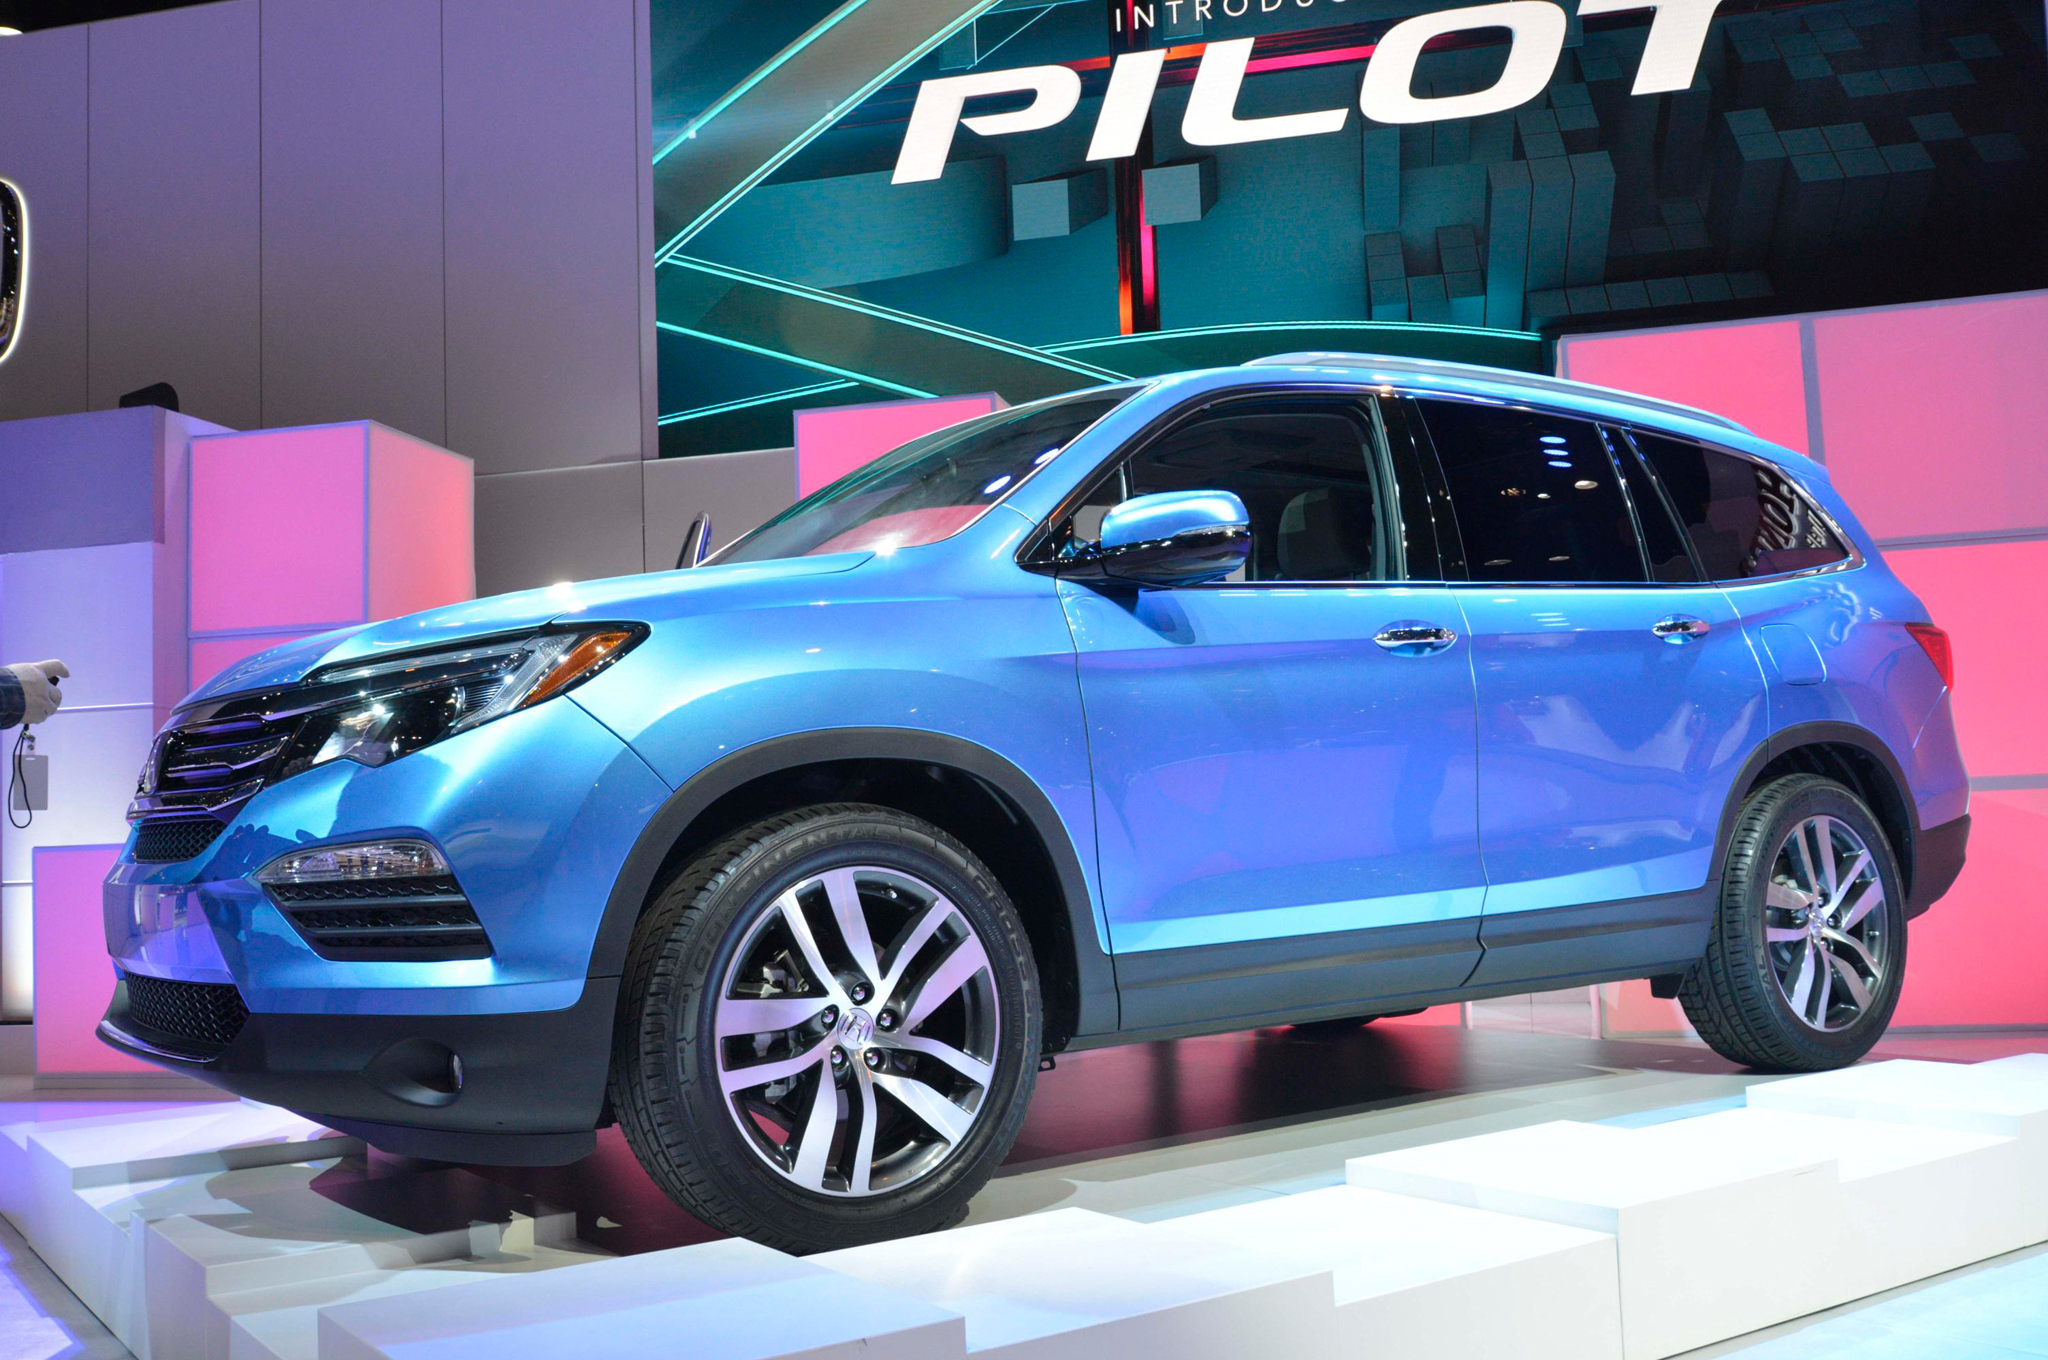 2016 Honda Pilot Will Make 280 HP Gets New Trim Levels